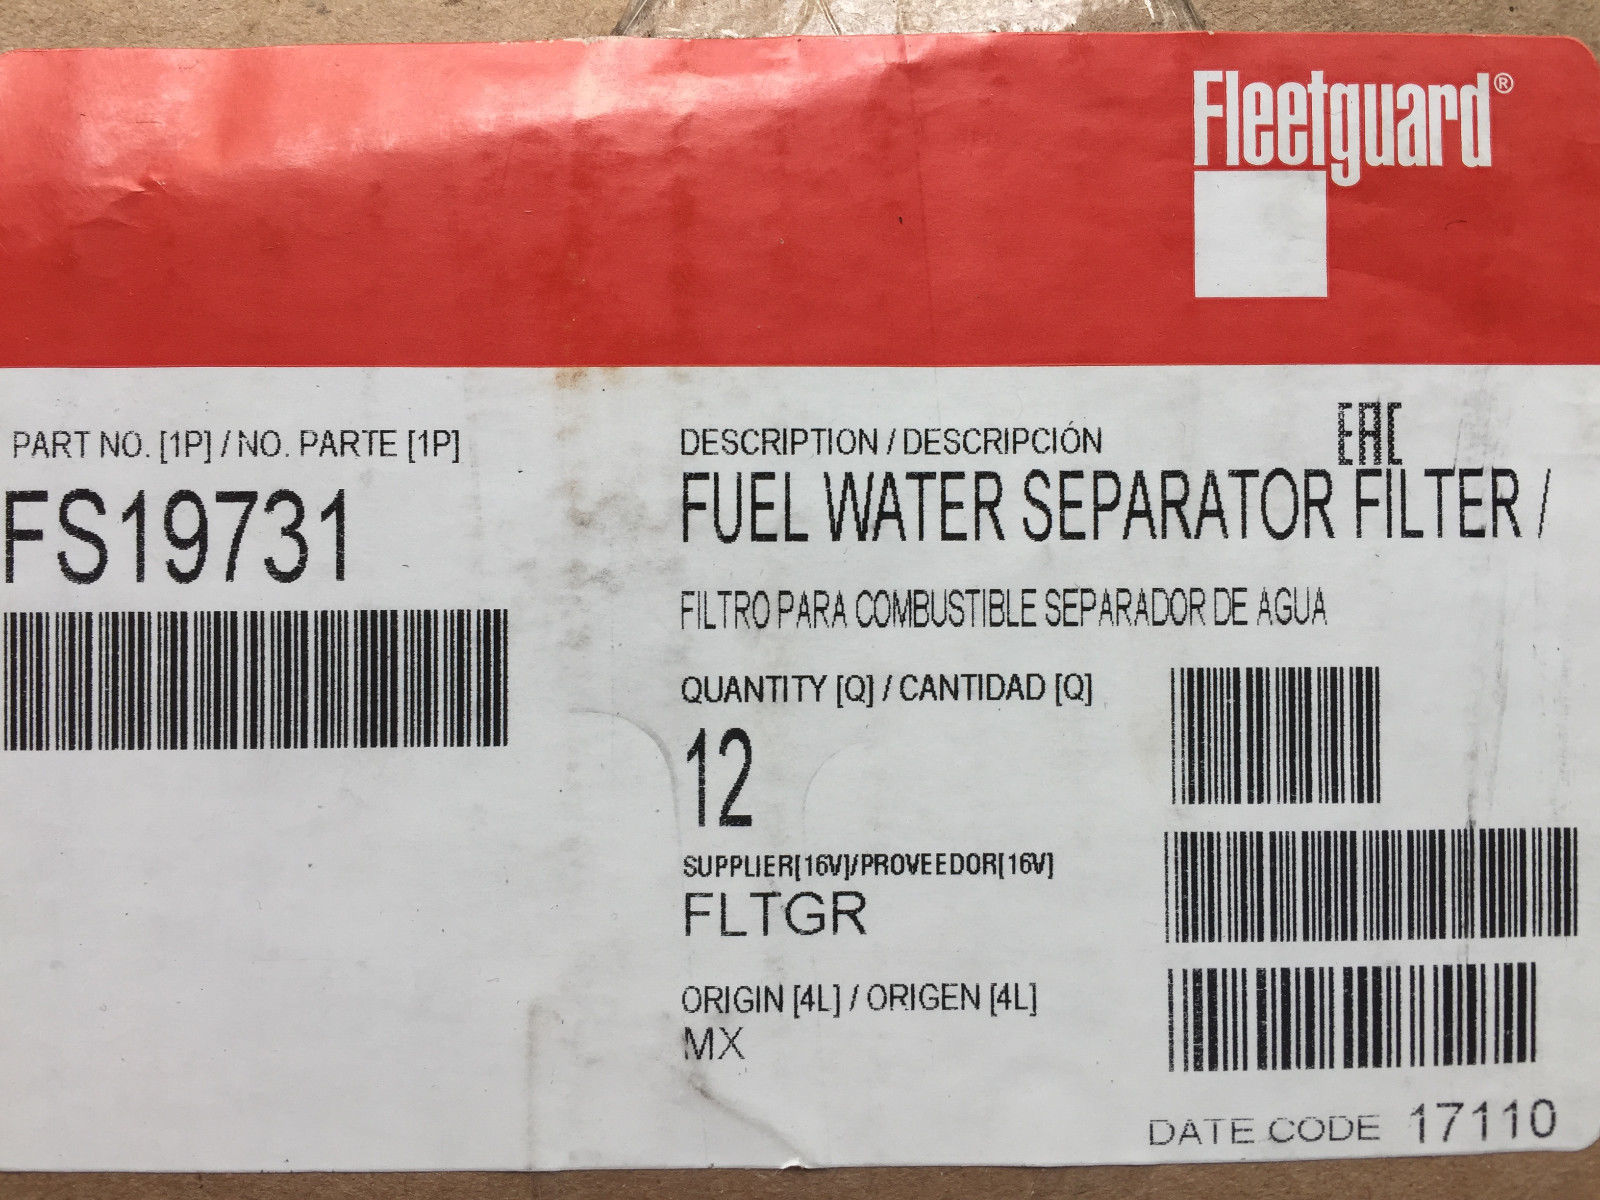 Case Fuel Filters Of 12 Fs19731 Fleetguard Filter And 21 Similar Items Pro Fh232 Series